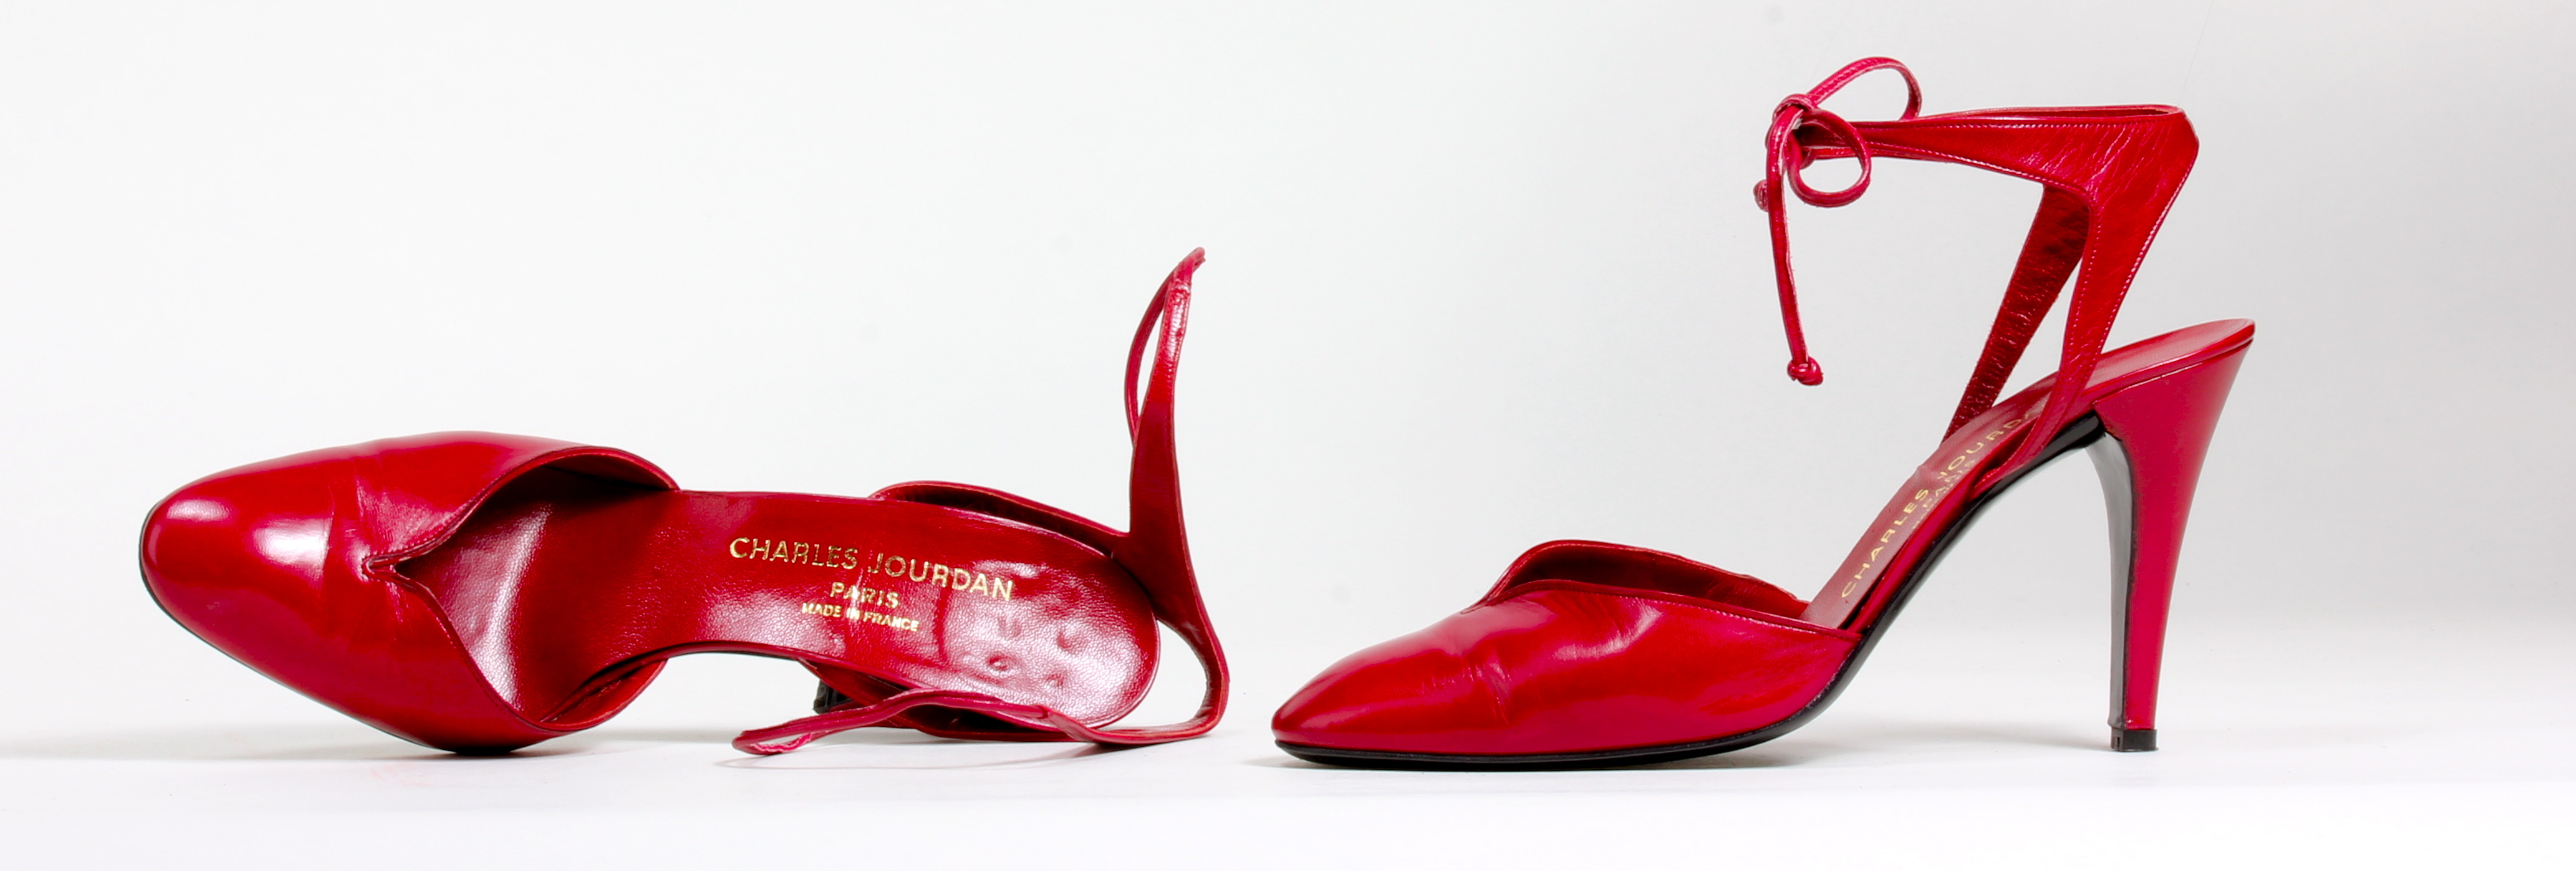 ada494d0106f Tie~On Cherry Red Pump by Charles Jourdan Paris 1978